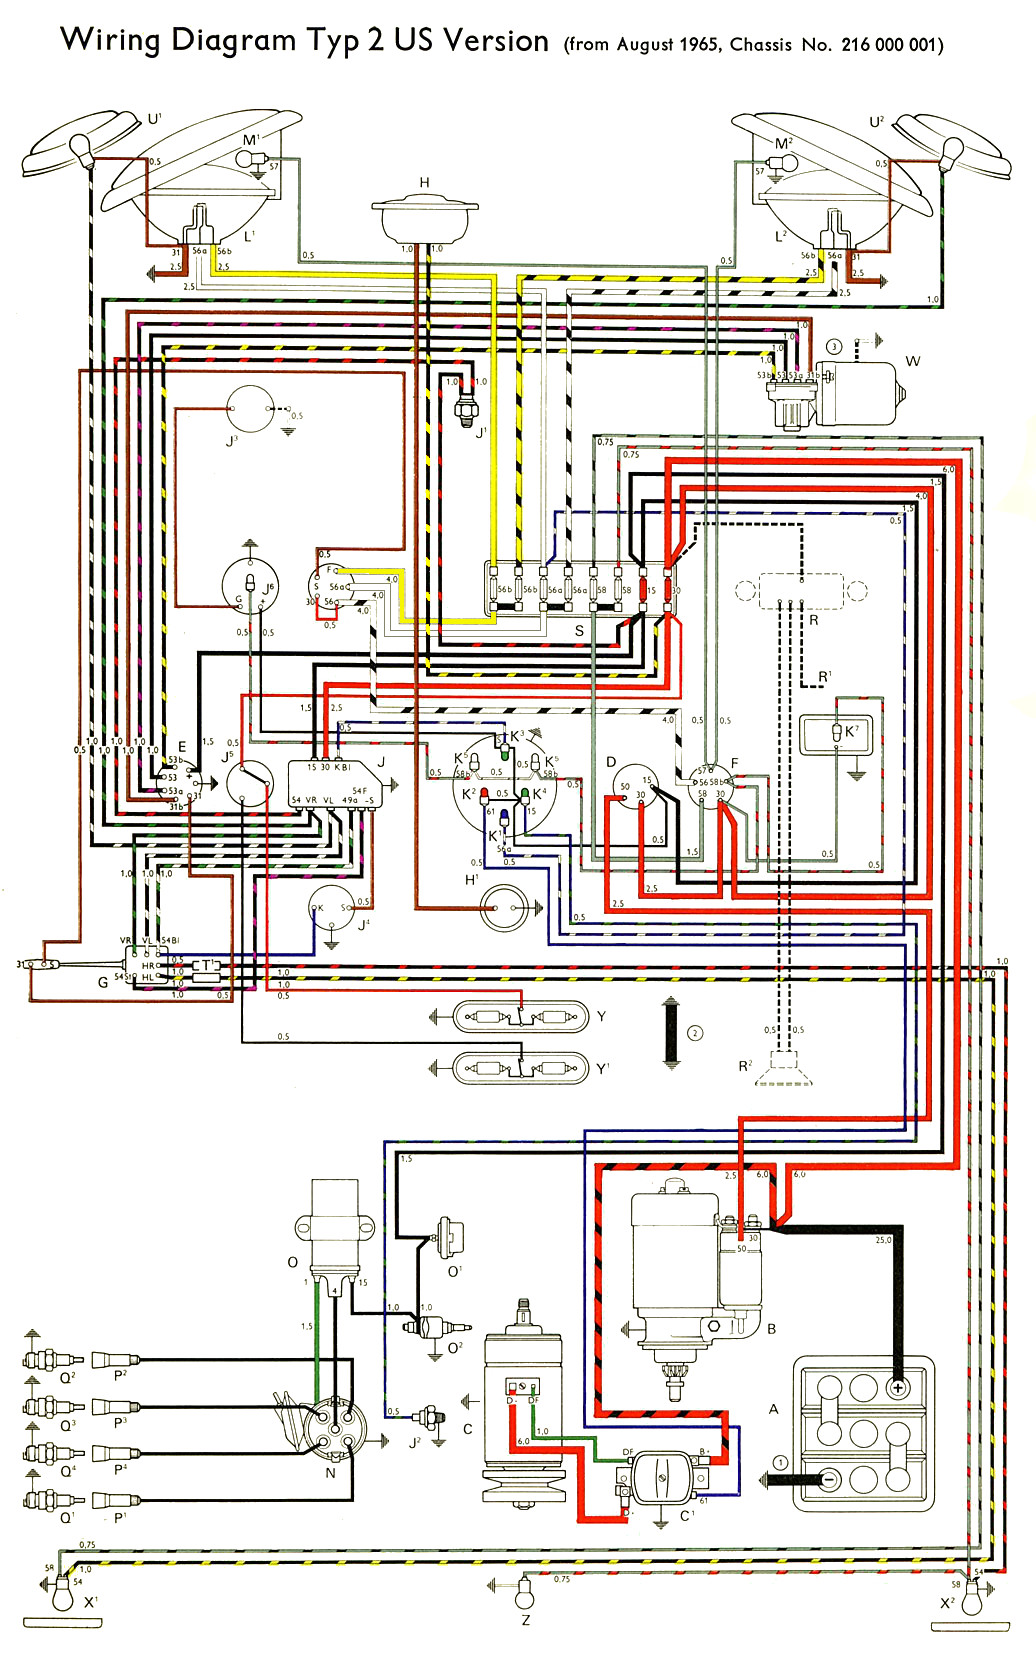 bus_66_USA 4g91 wiring diagram 4g93 wiring diagram pdf \u2022 indy500 co blodgett mark v 111 wiring diagram at n-0.co